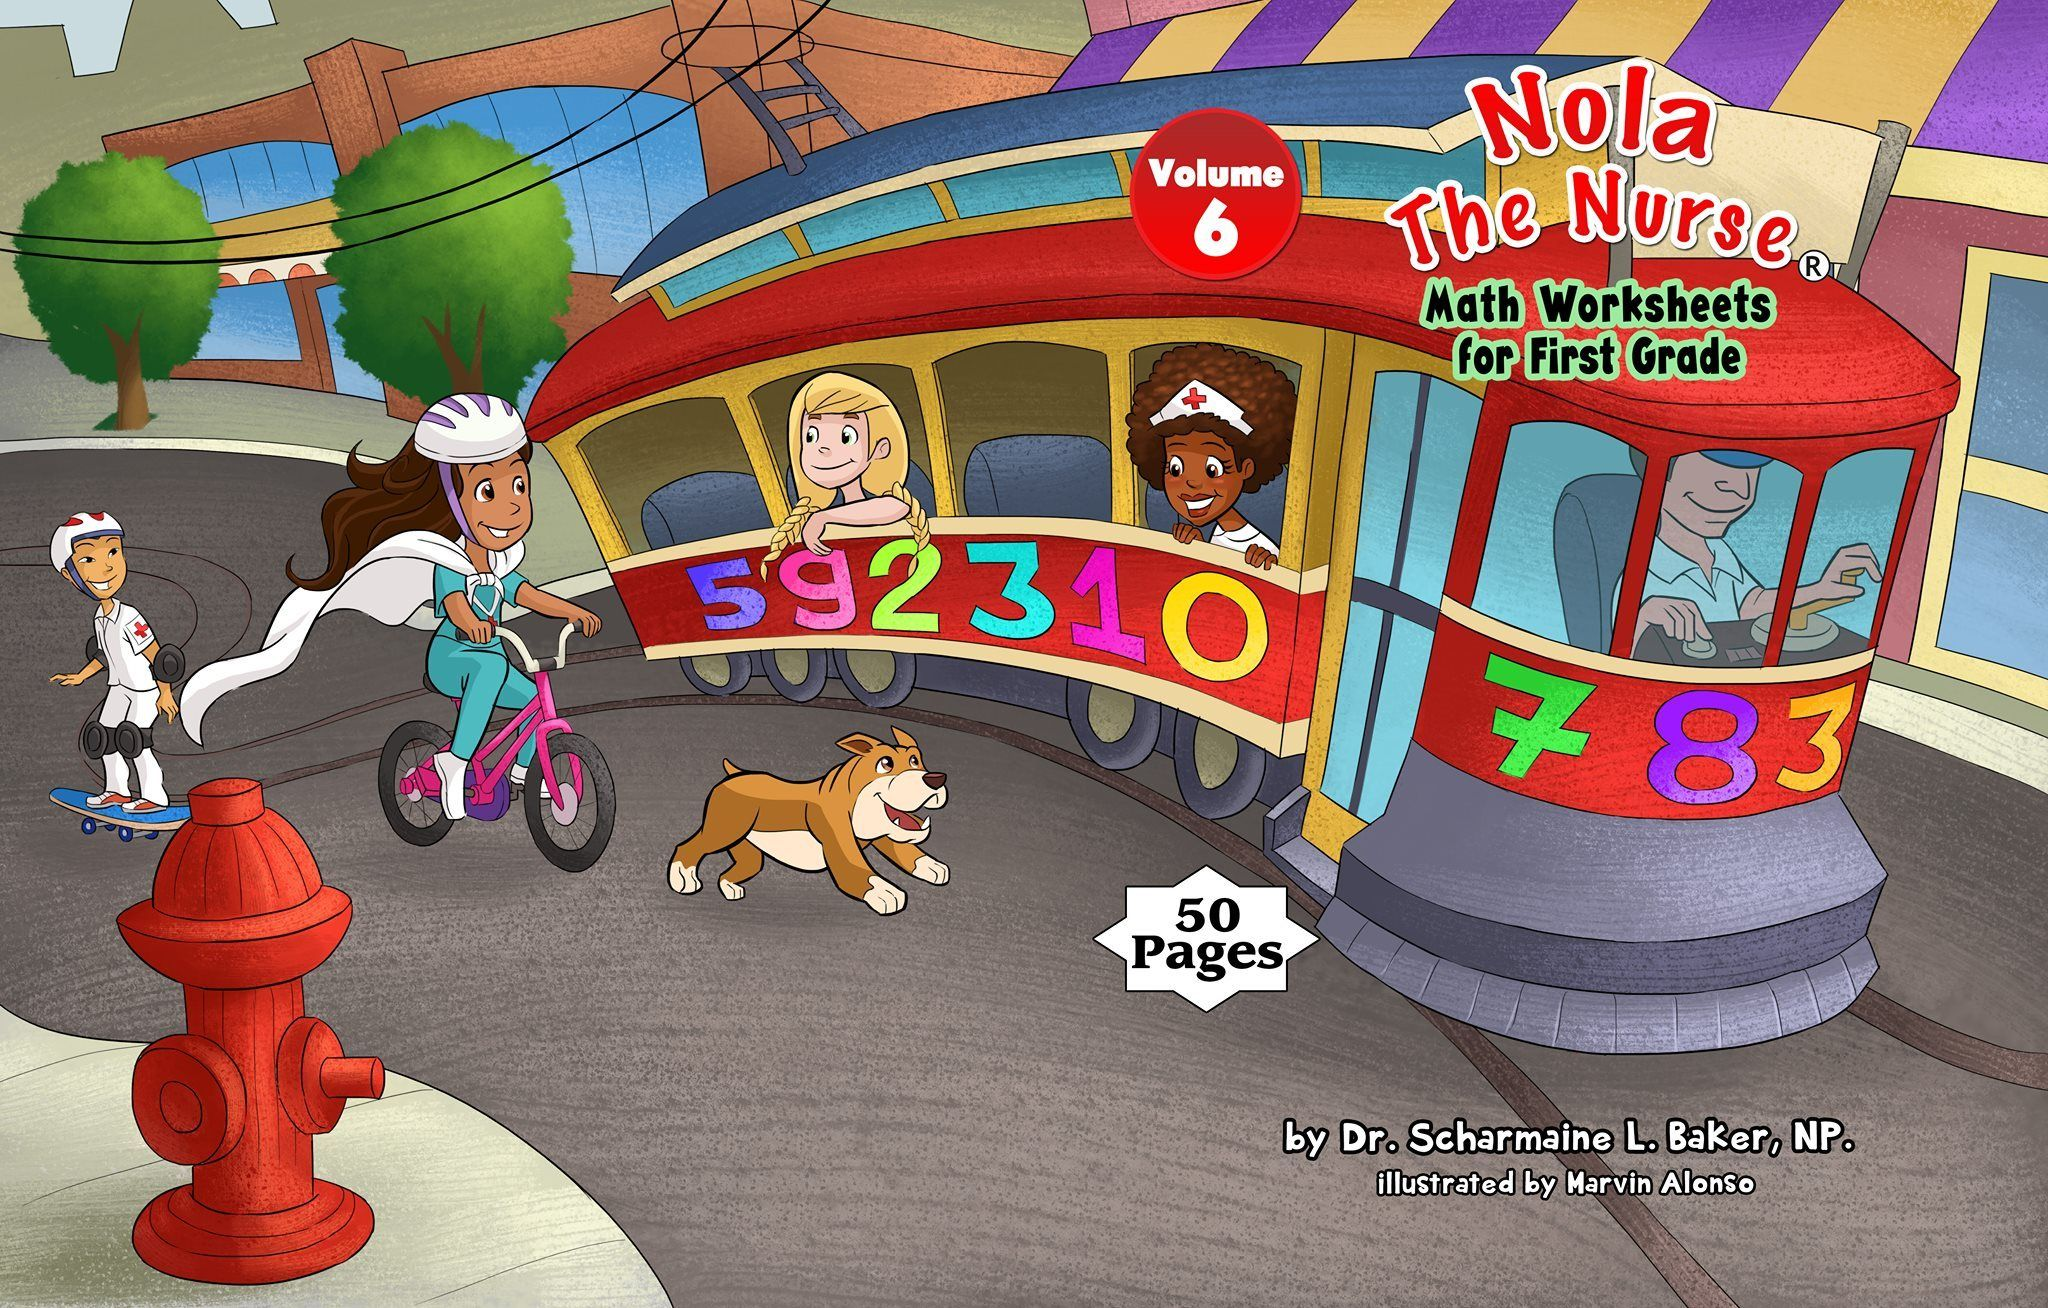 Nola The Nurse Math Worksheets For First Graders Vol 6